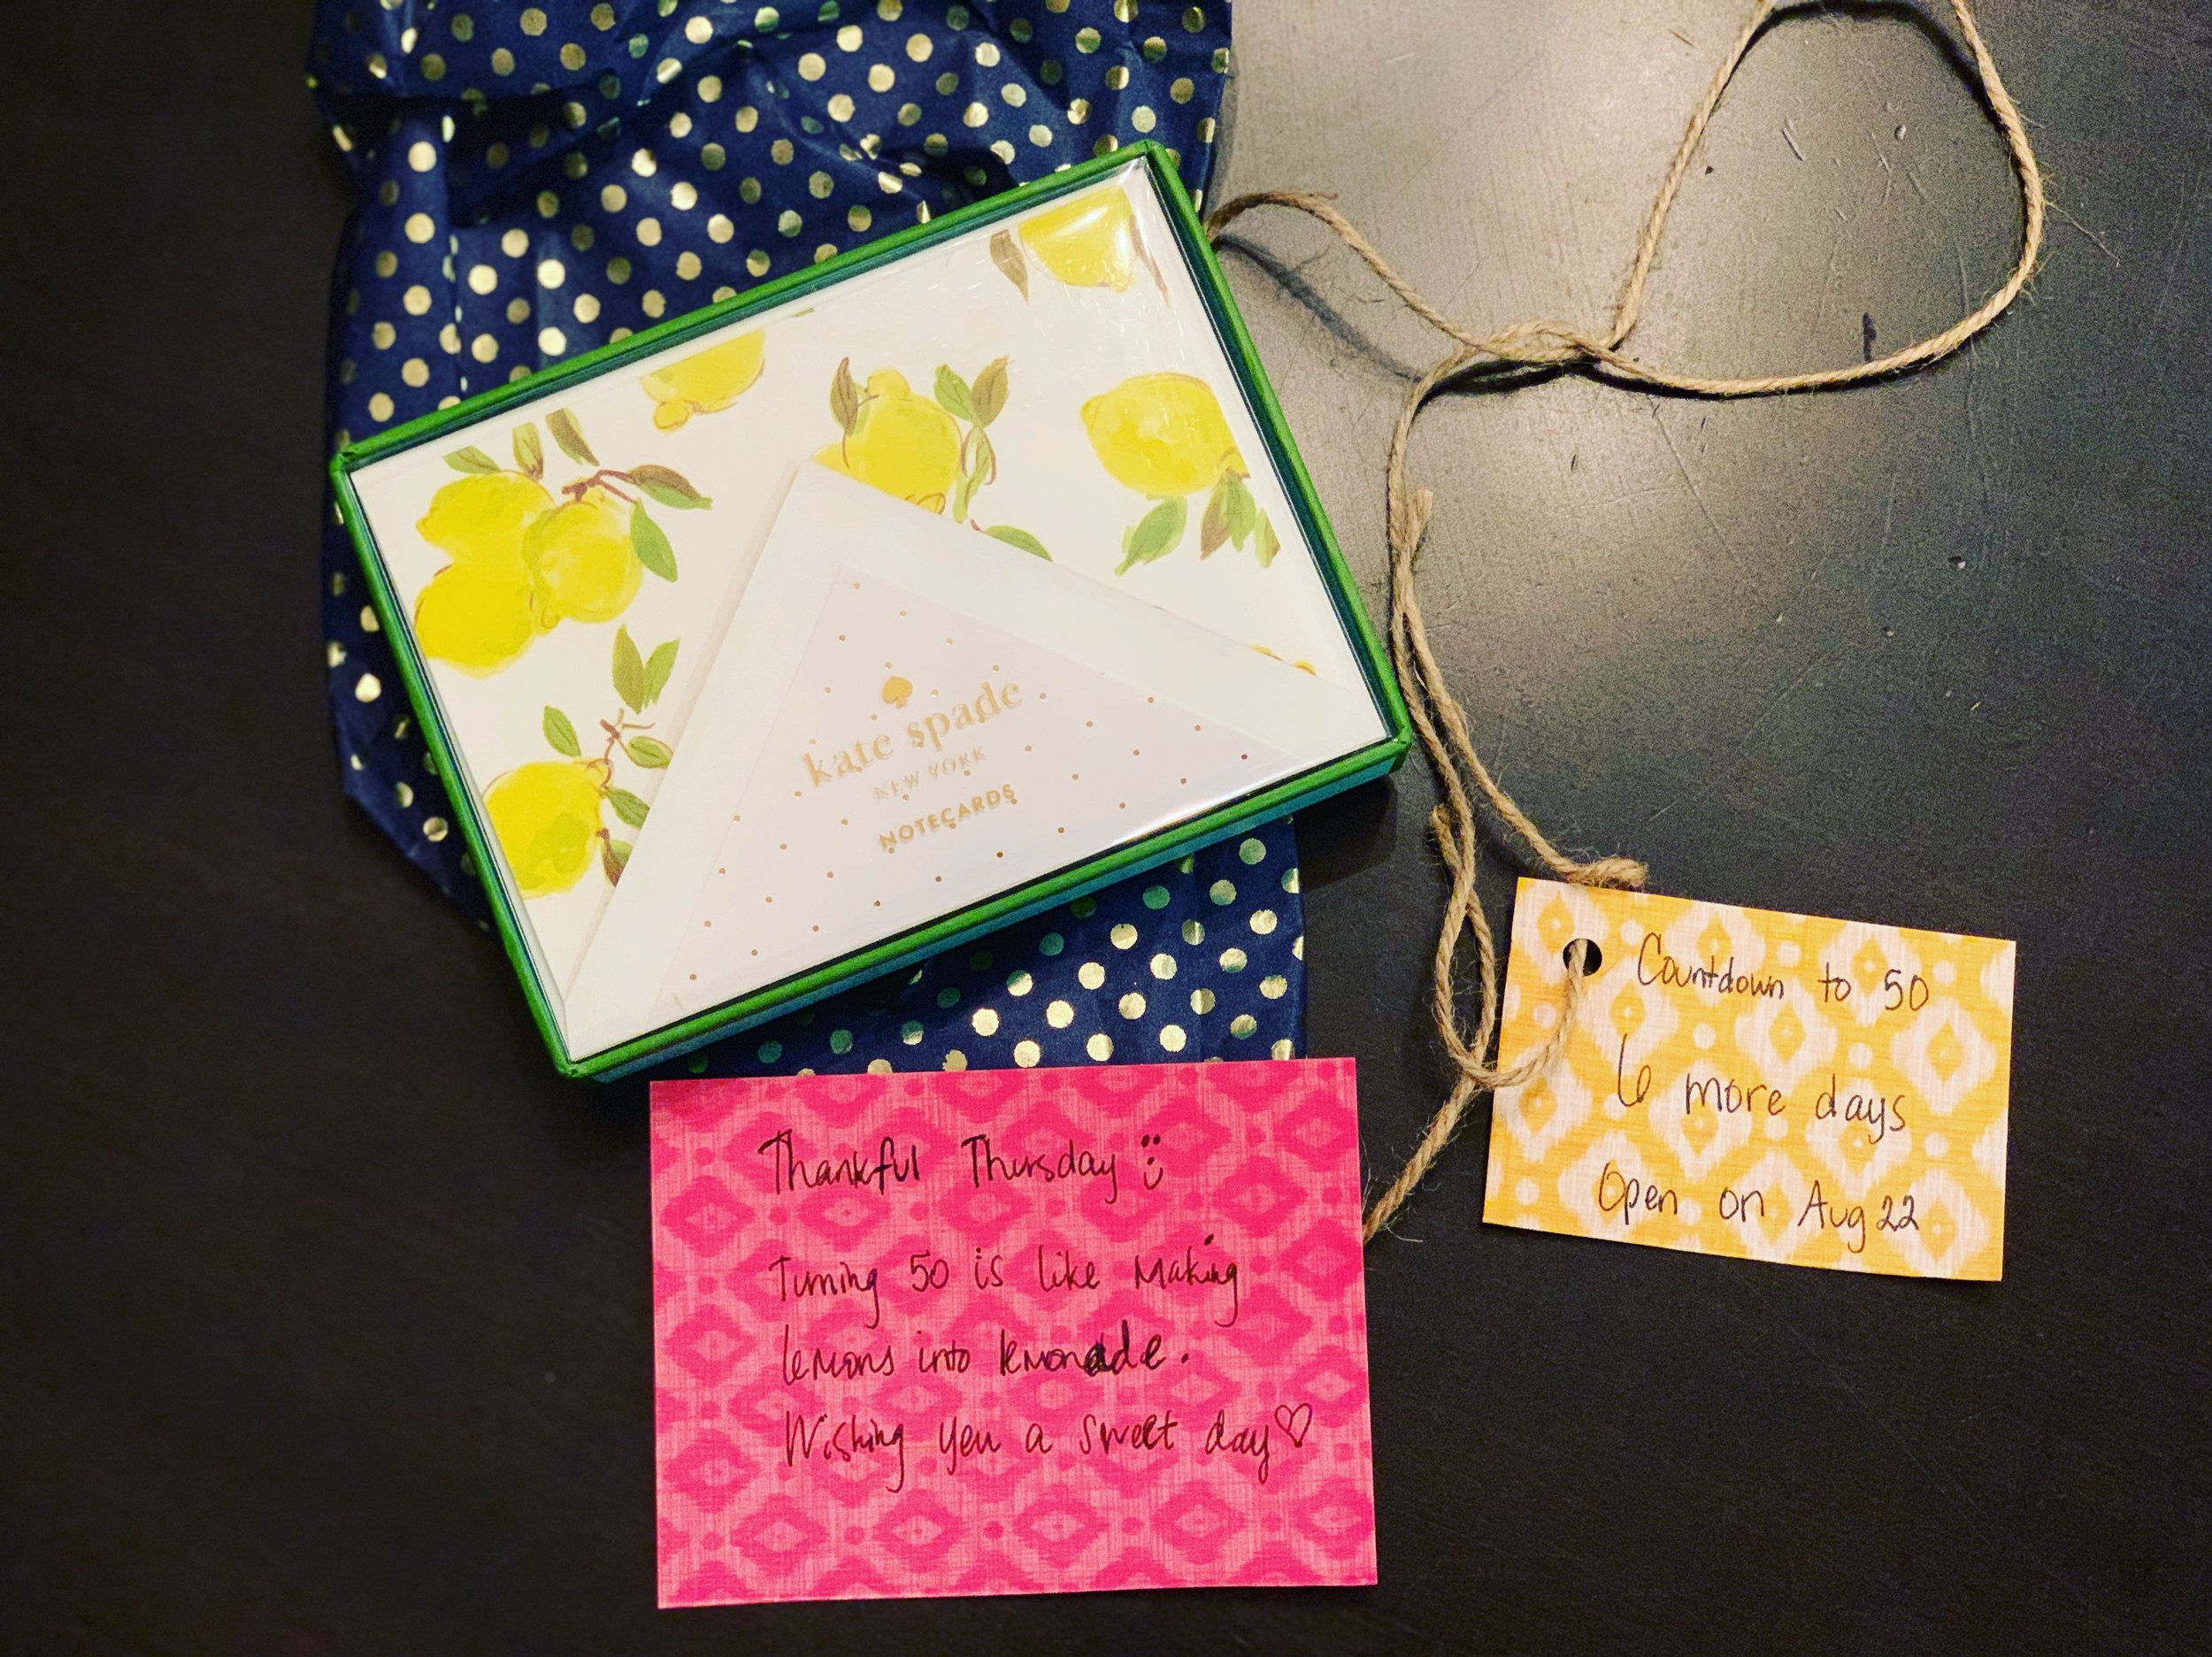 """Gift #2 - """"Turning 50 is like making lemons into lemonade."""" Jay-Jay timed this perfectly because she wanted me to open these thank you cards on a Thursday. Thank You Card Thursday. Yes, she's  that   thoughtful ."""